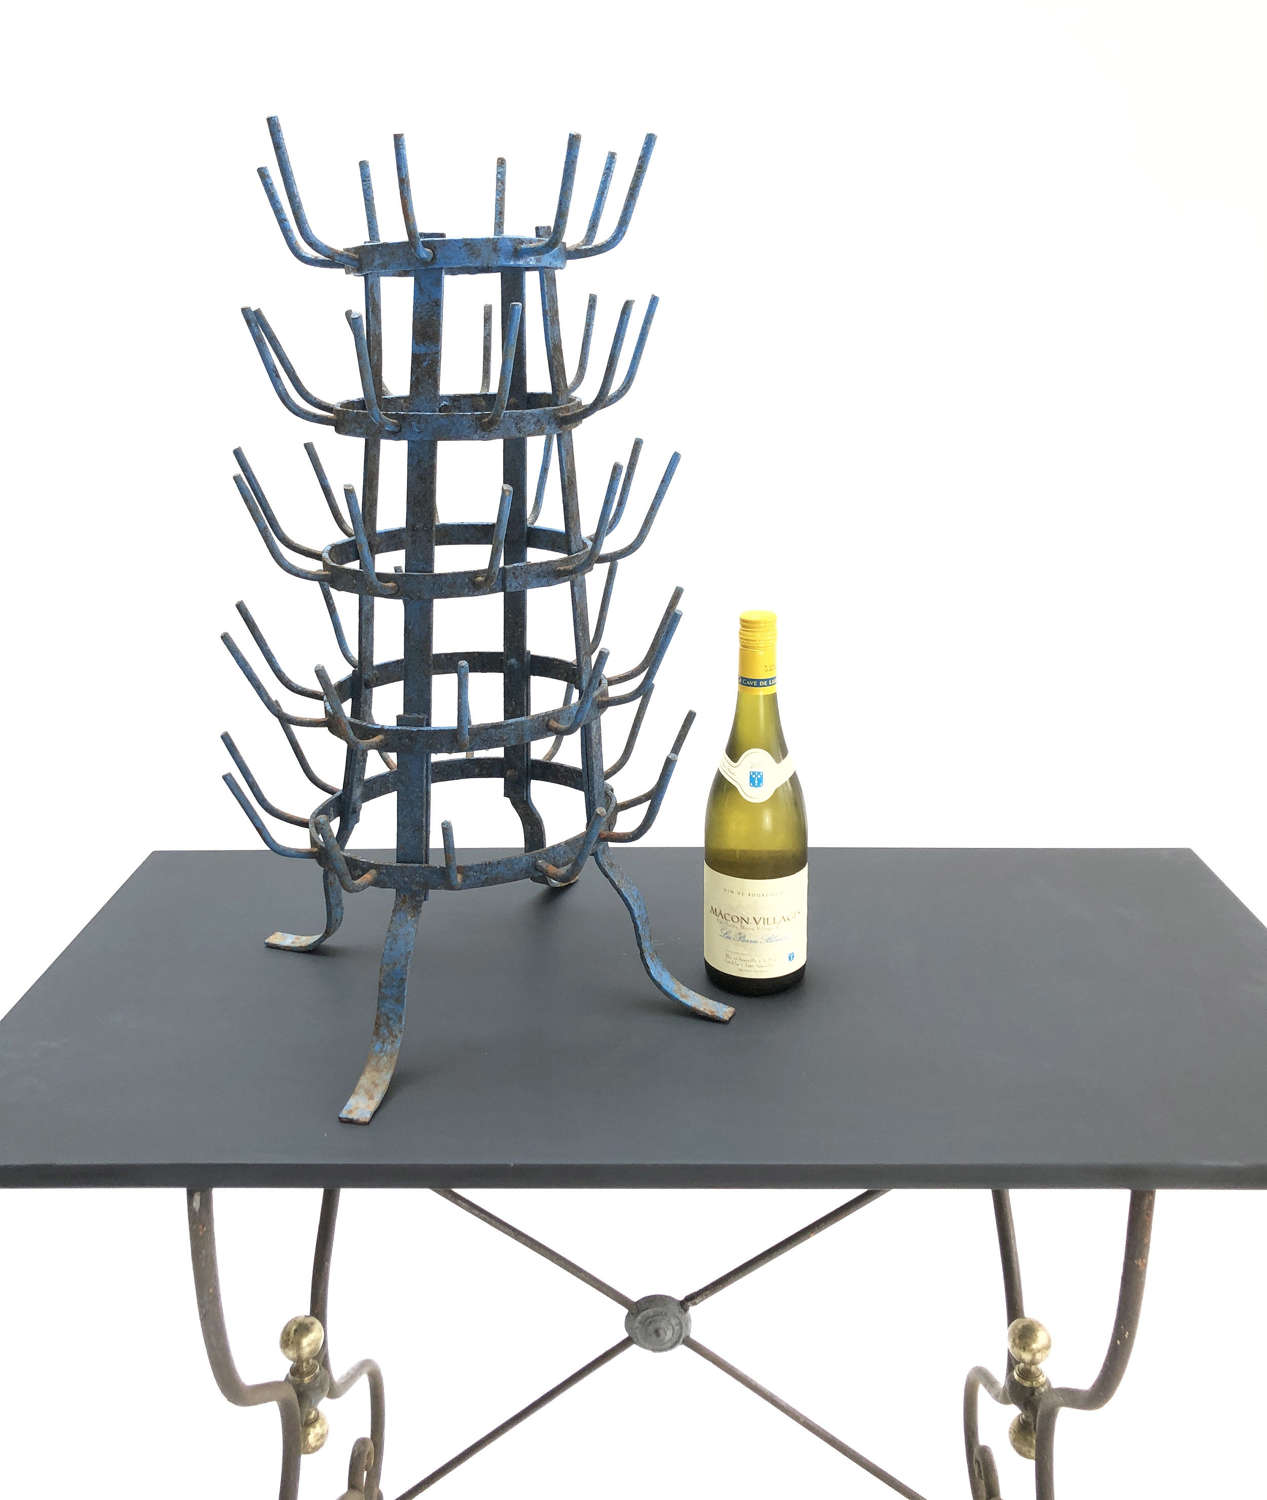 A small French iron Bottle Drying Rack - circa 1920